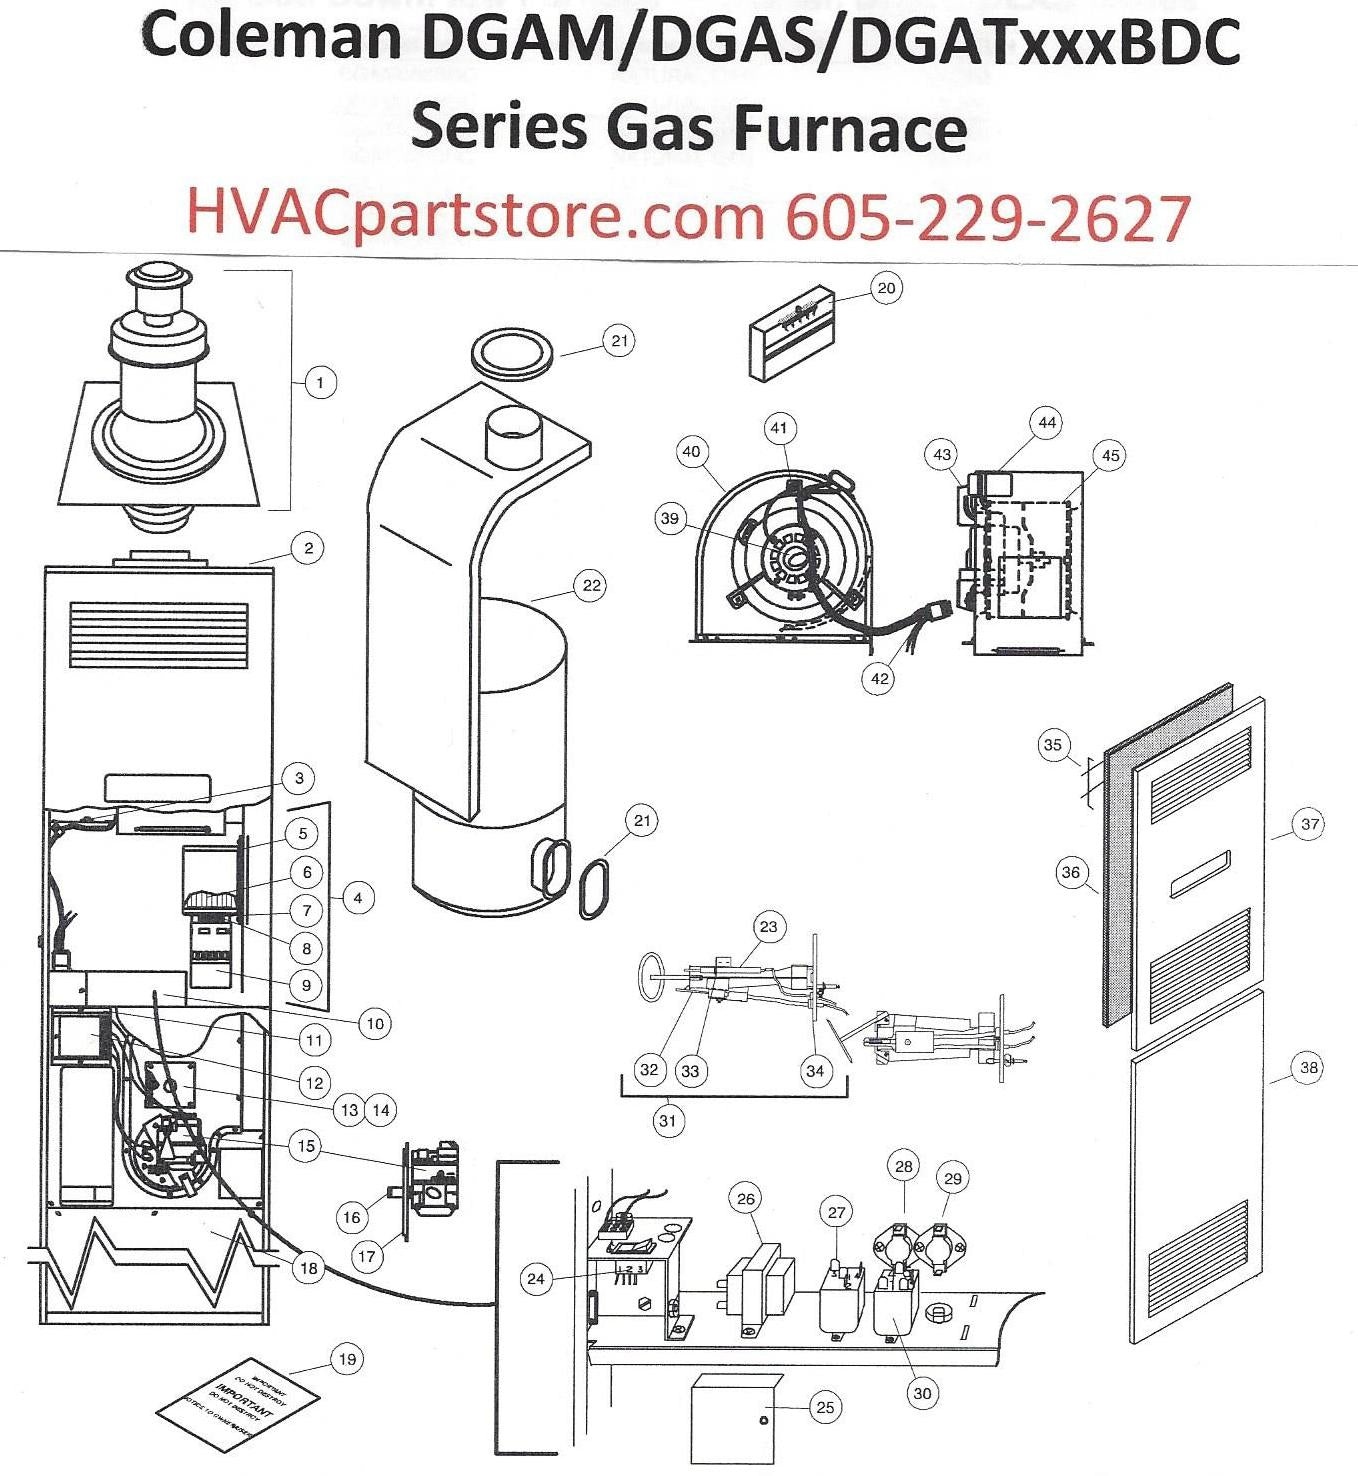 Hvac Parts List Climatrol Furnace Wiring Diagram Click Here To View A Manual For The Dgat Which Includes Diagrams 1358x1476